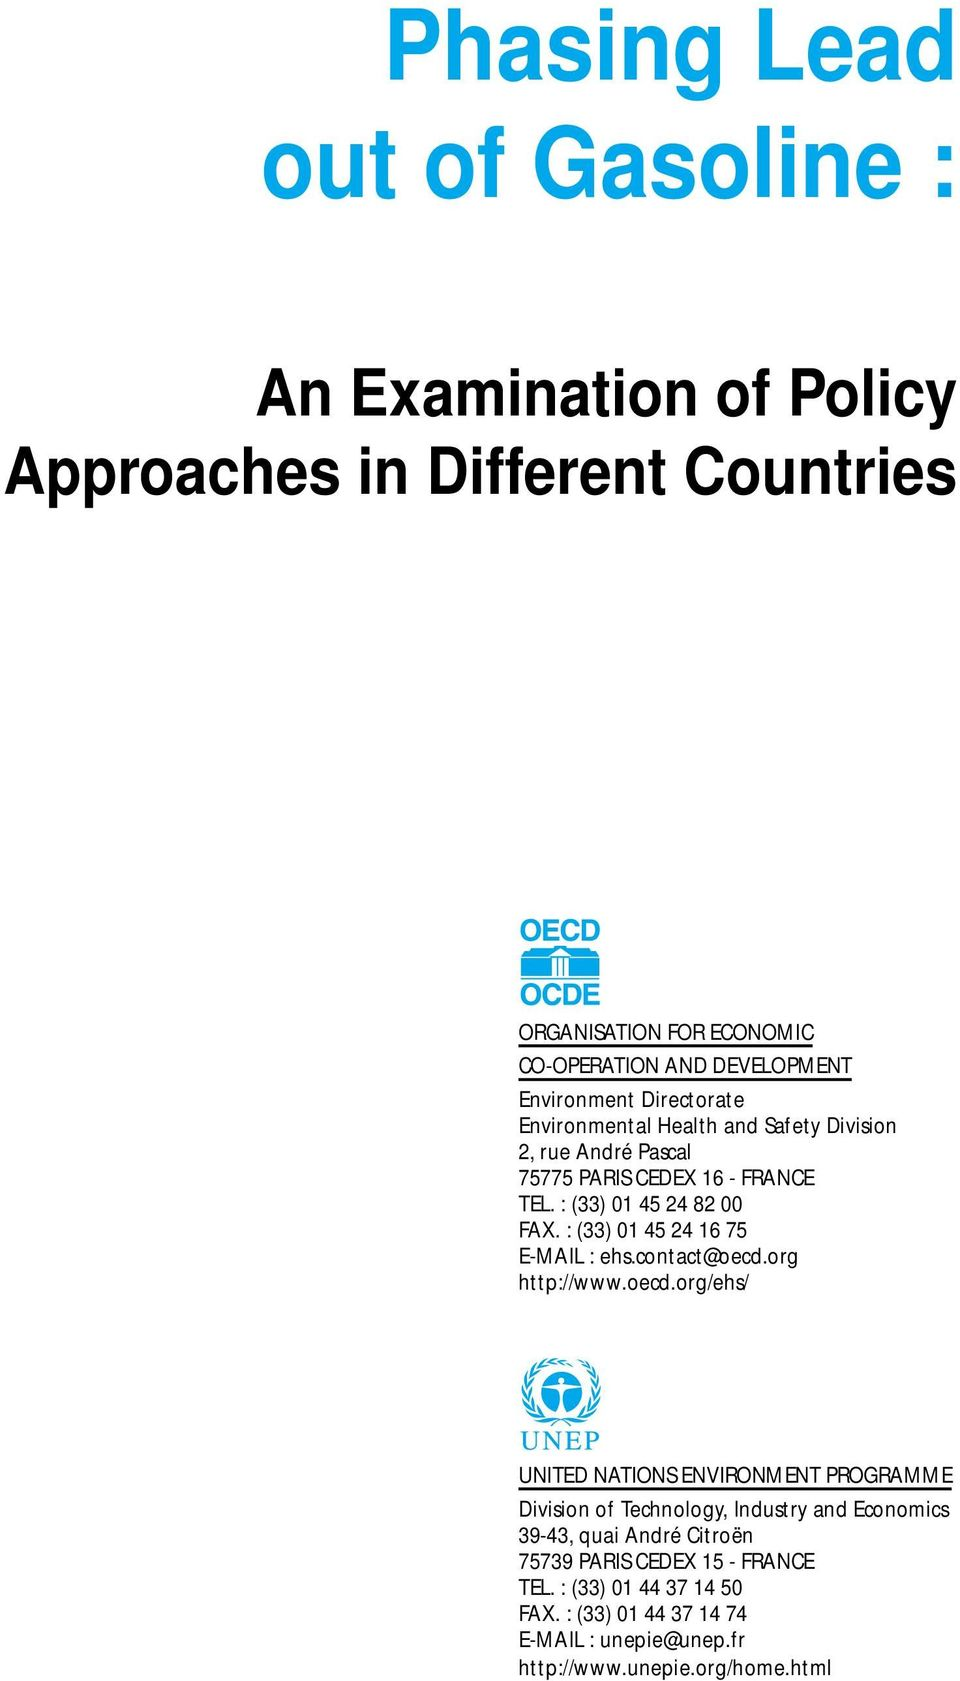 : (33) 01 45 24 16 75 E-MAIL : ehs.contact@oecd.